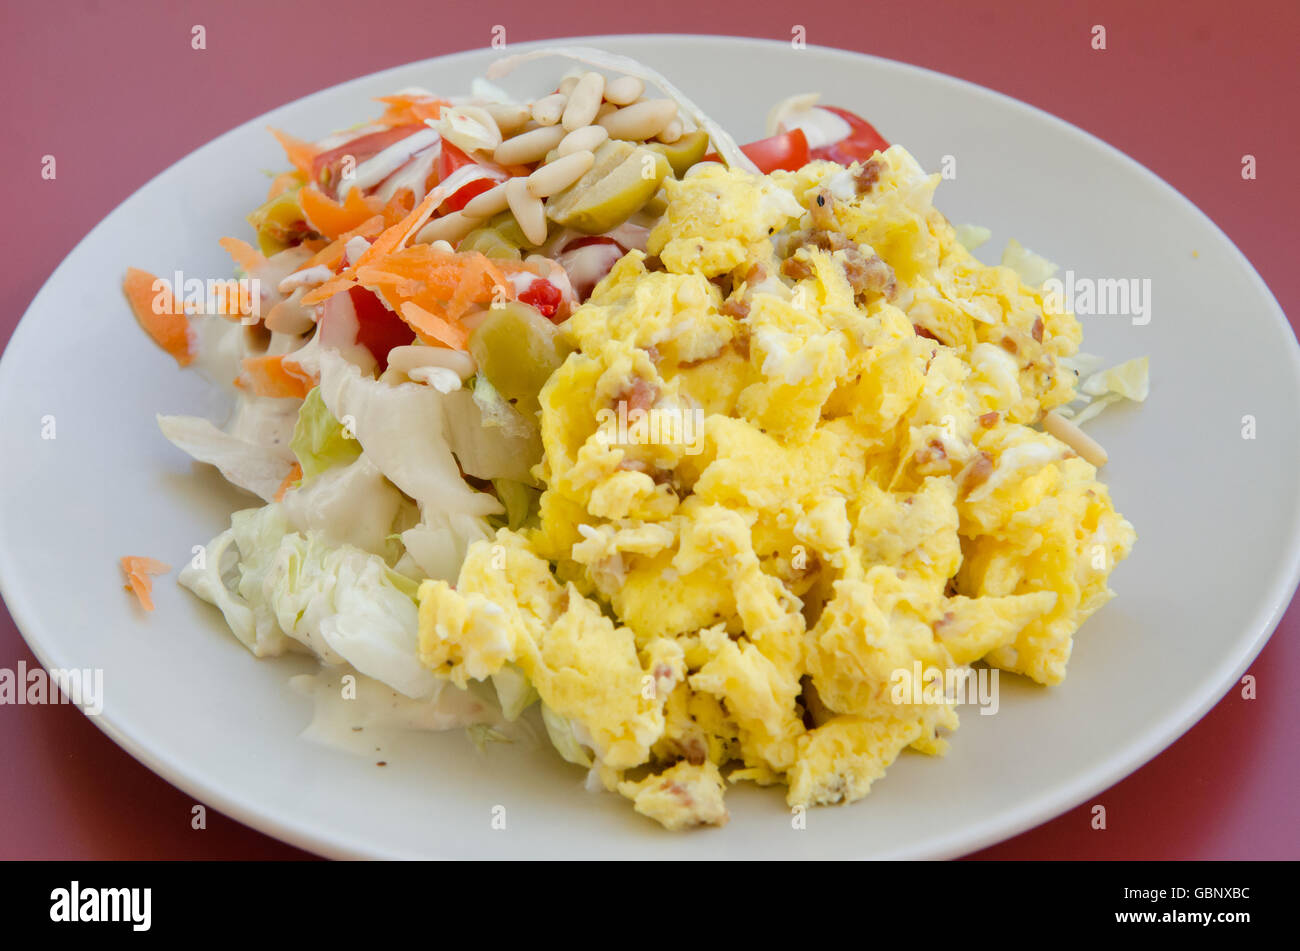 Plated scramble eggs and salad with pine nuts and olives - Stock Image